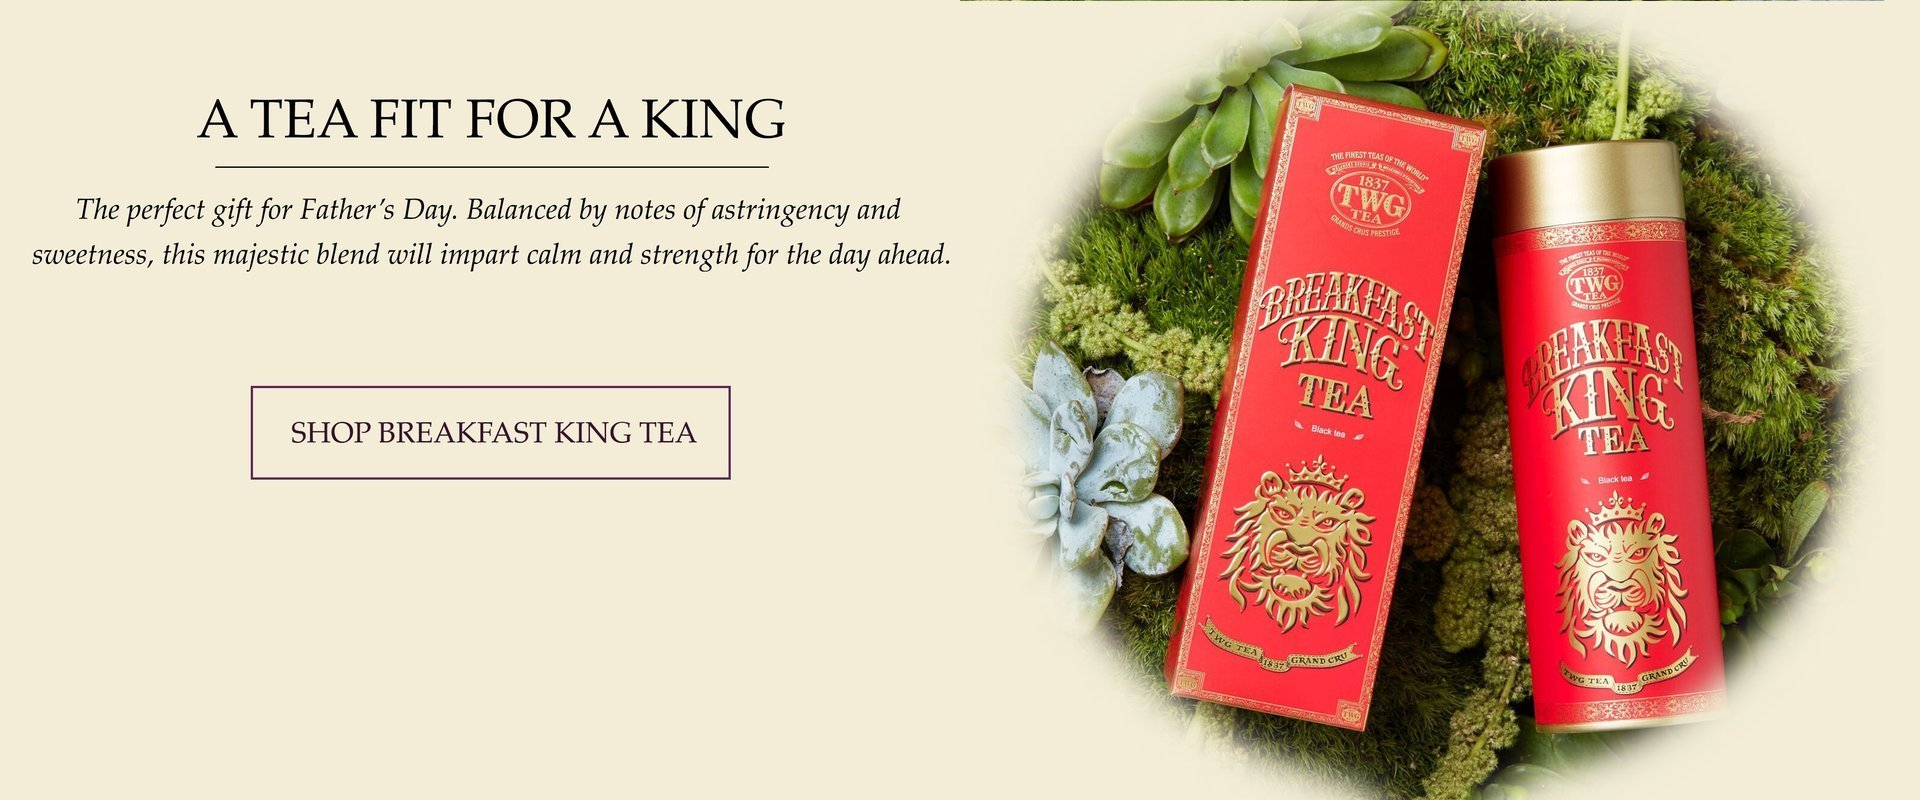 TWG Tea Teabag Collection - SHOP TWG Tea in Canada & US